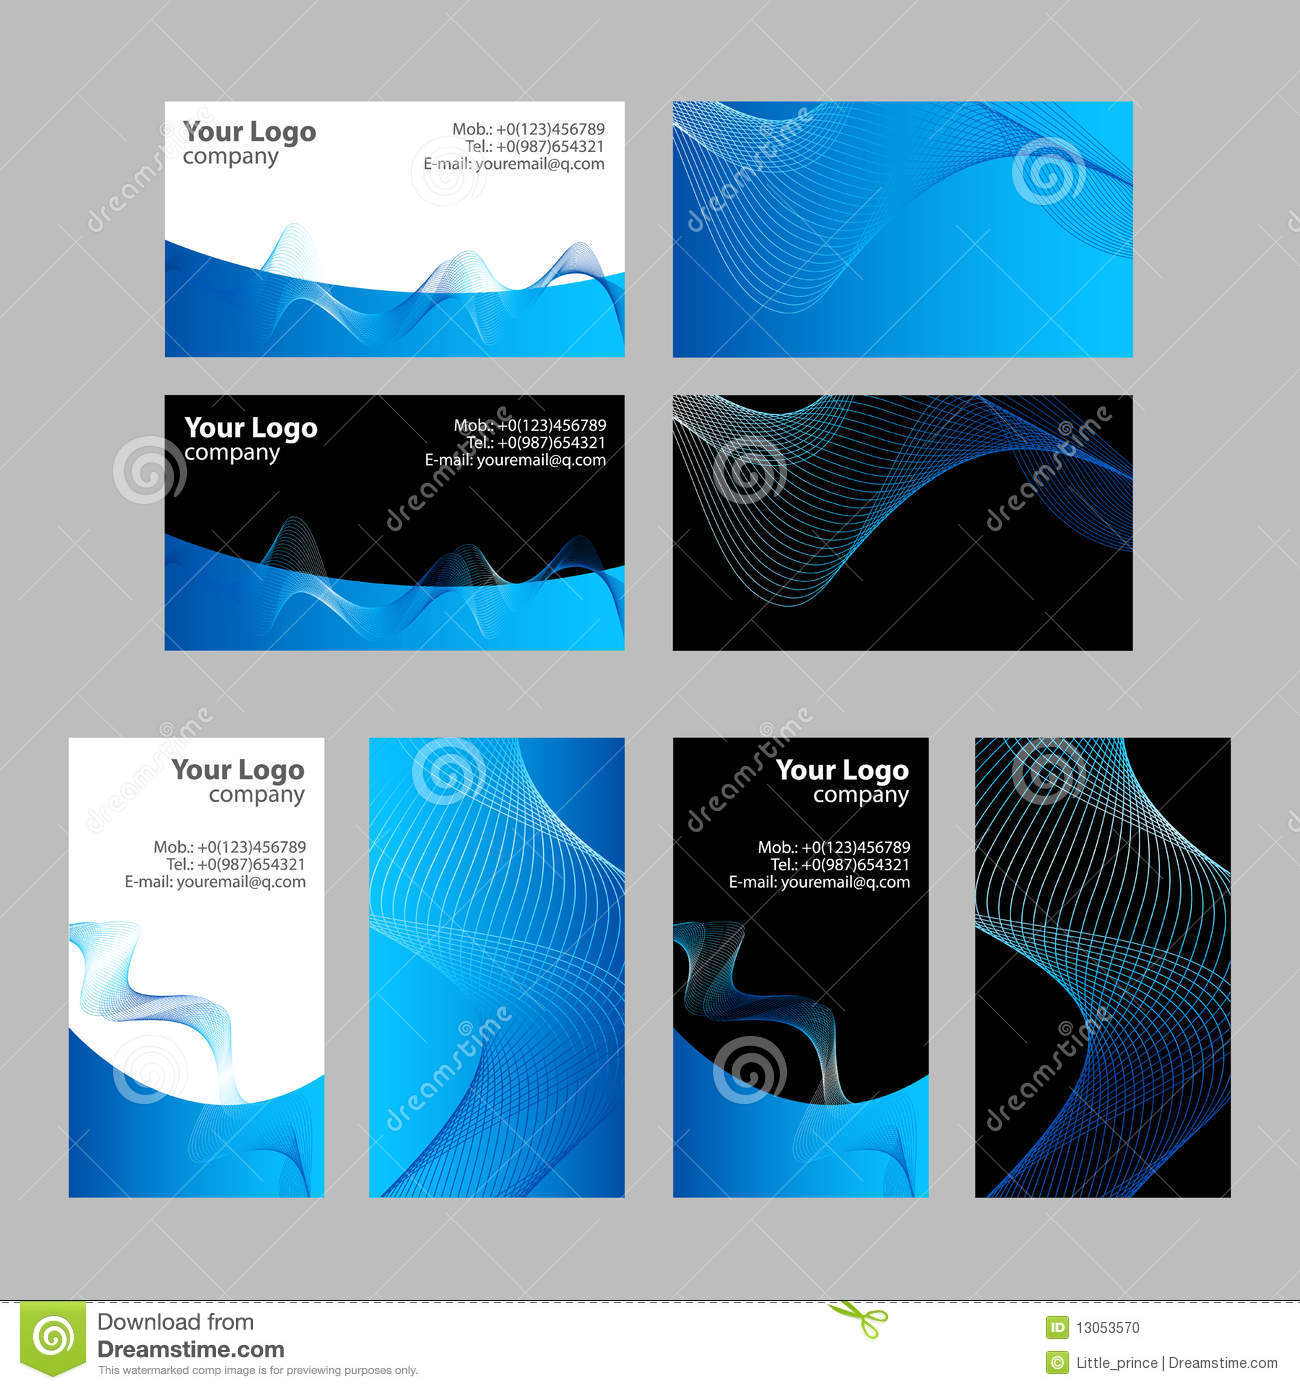 Business cards templates front and back stock photo for Front and back business card template